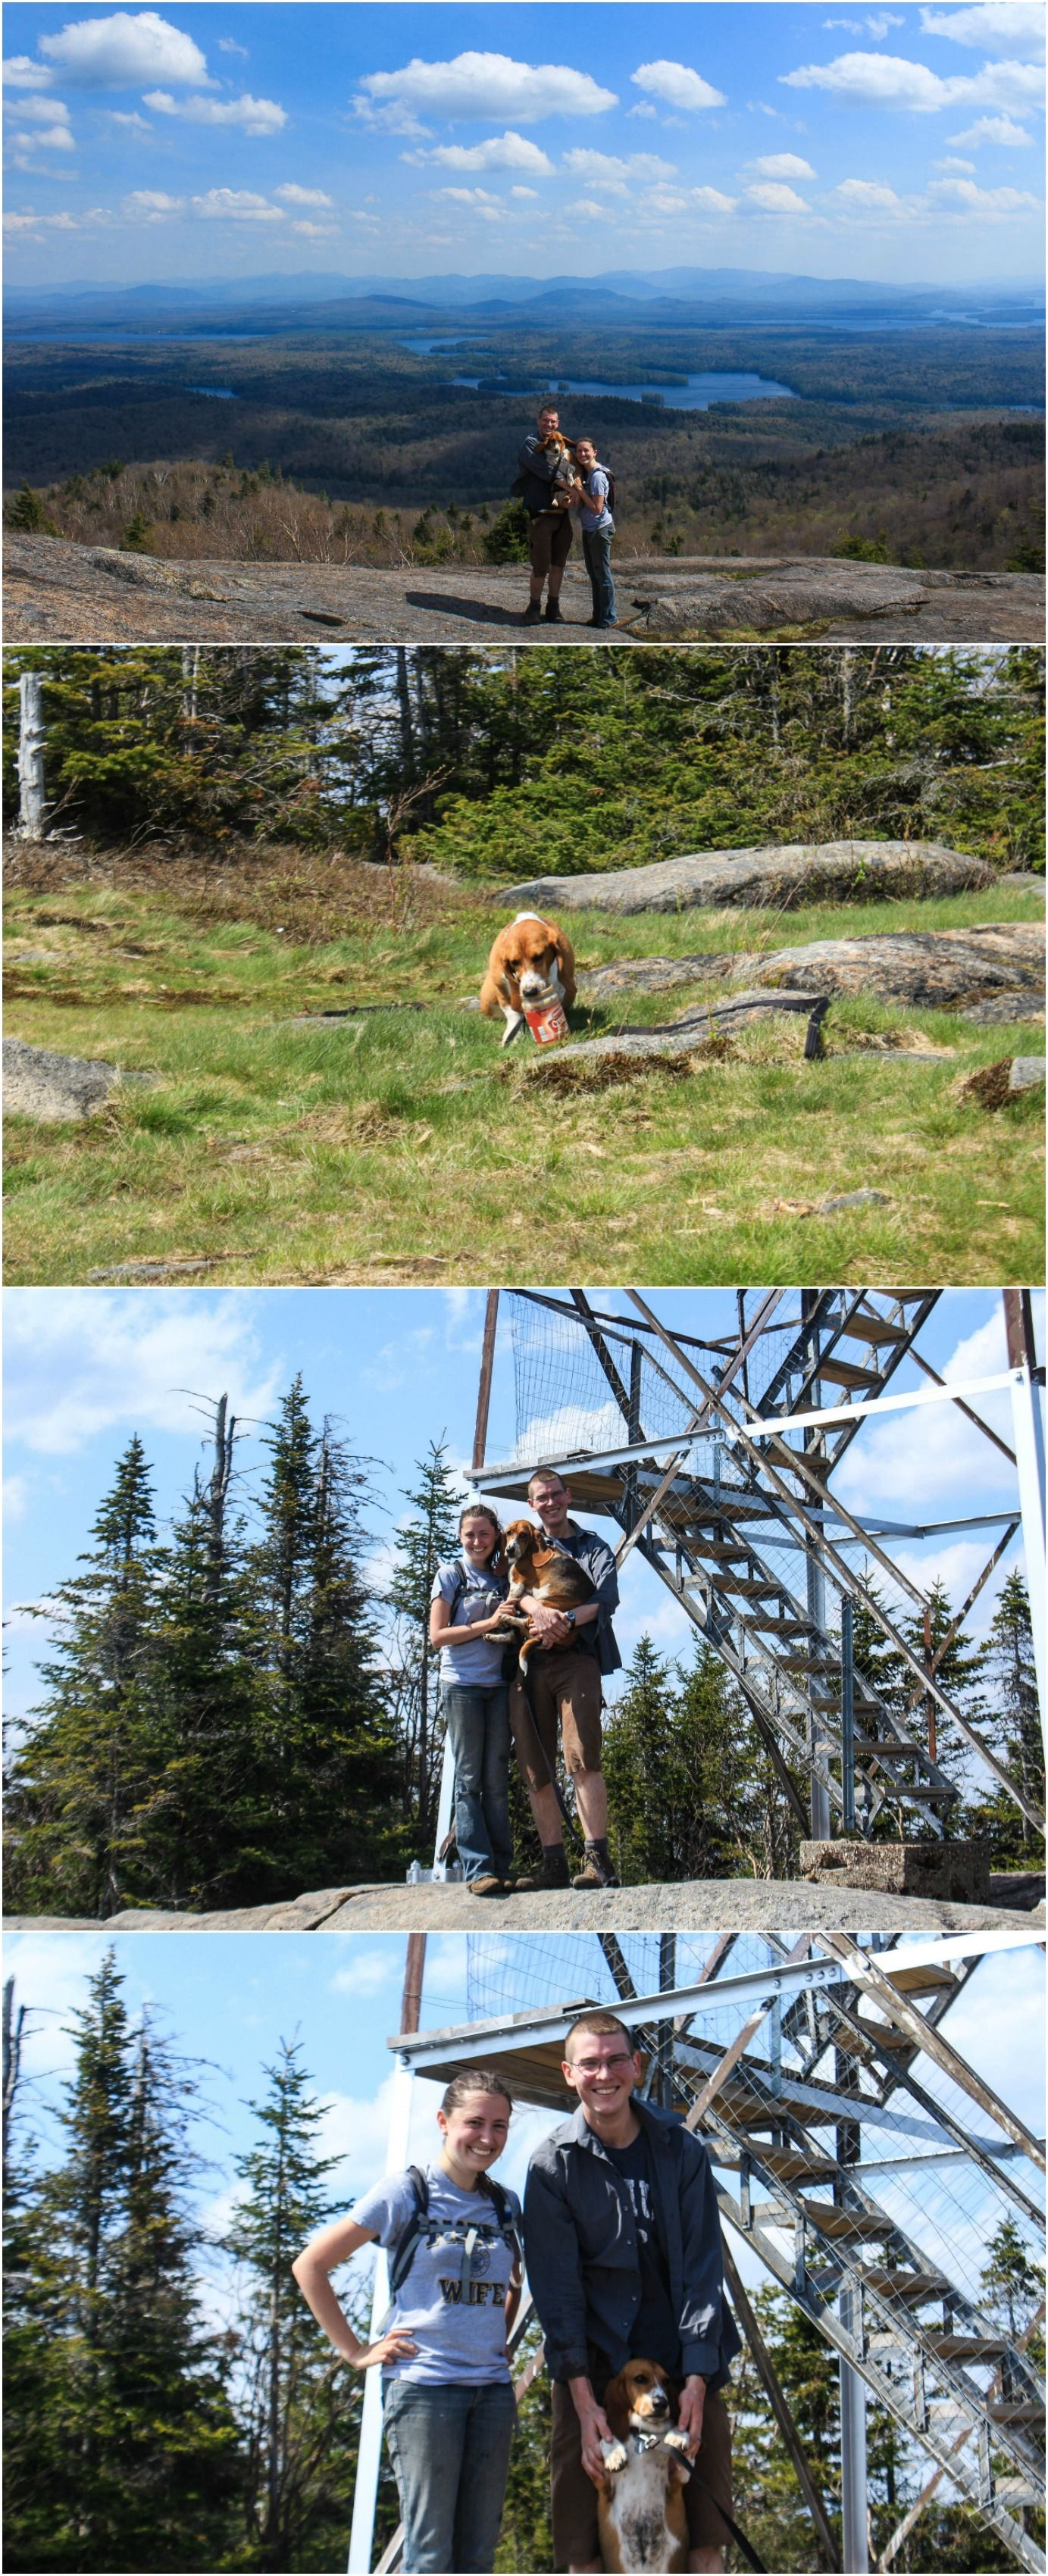 St  Regis Mountain Fire Tower   Saving Time in a Bottle